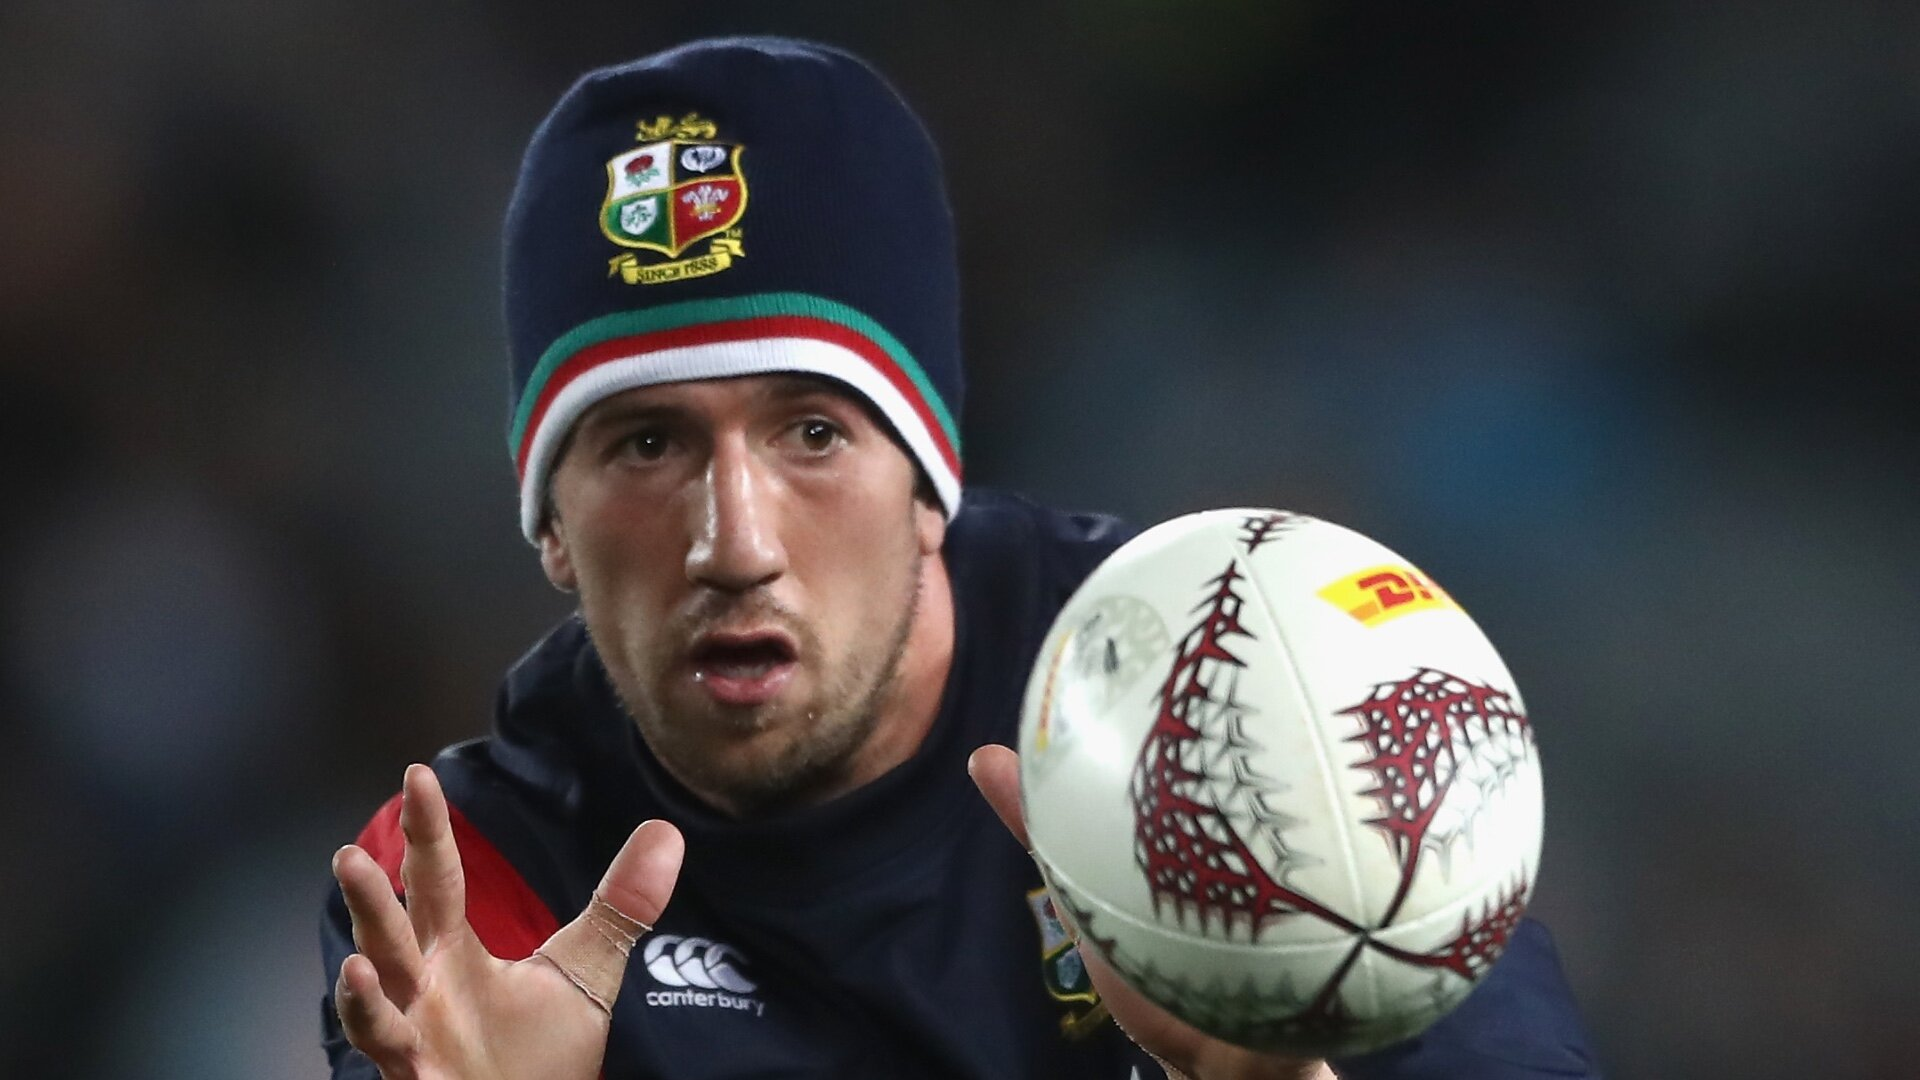 Tipuric catches ball